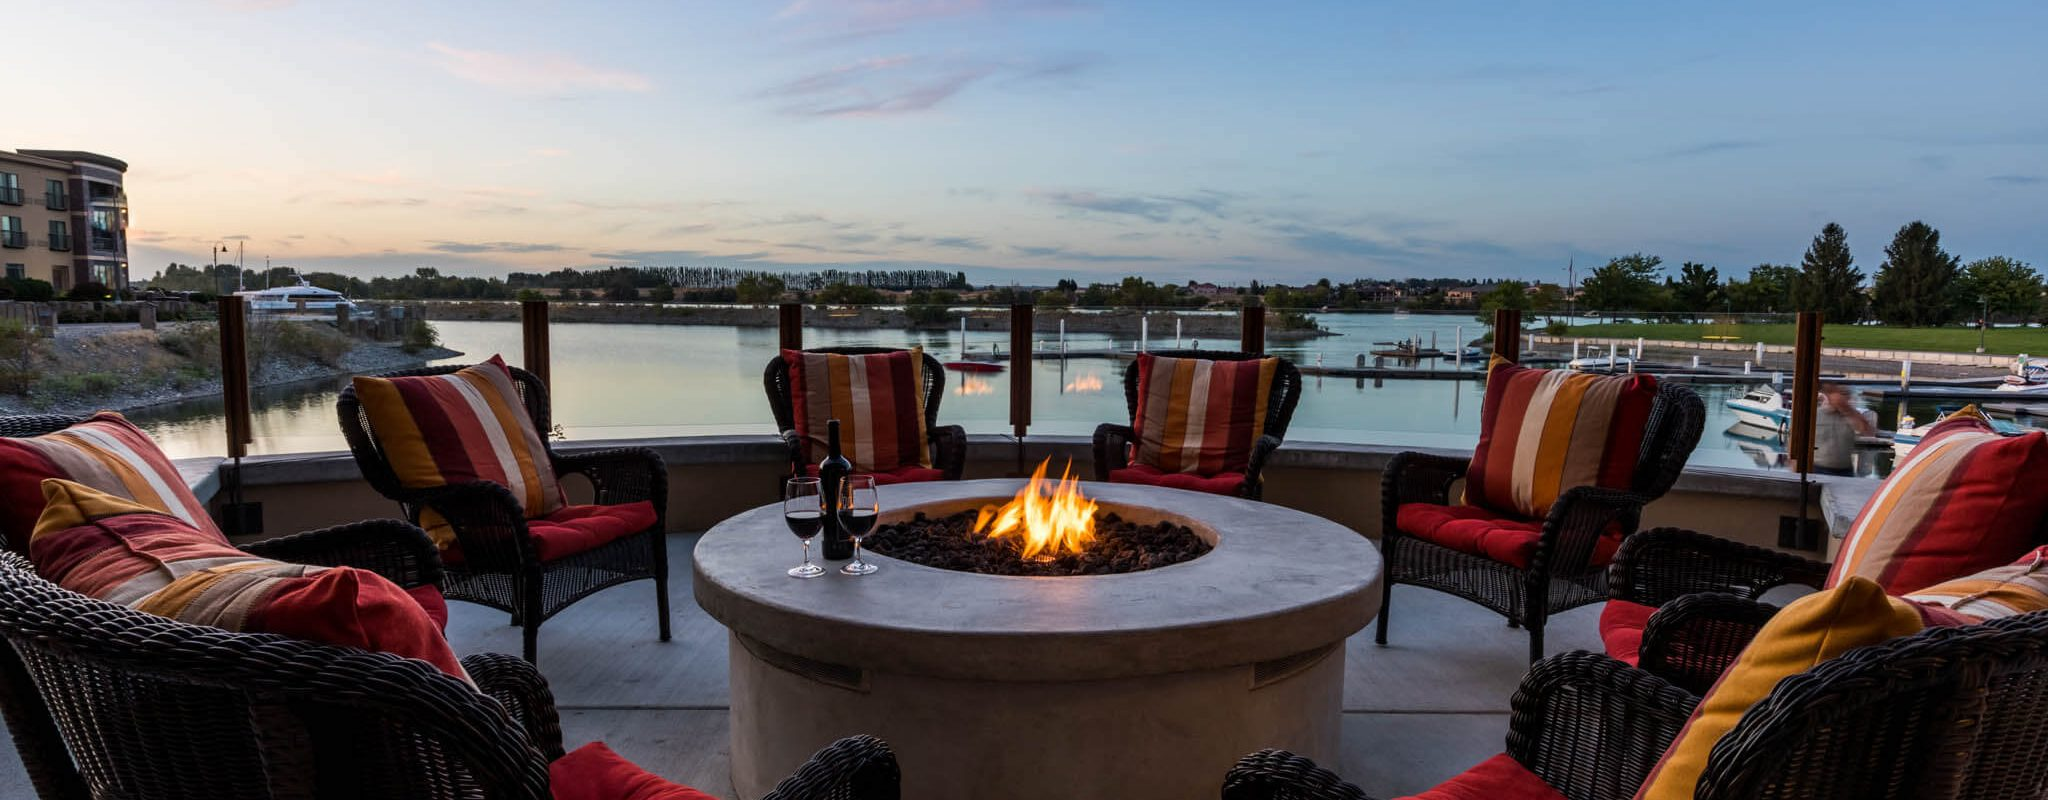 Fireside evening in Richland, Washington